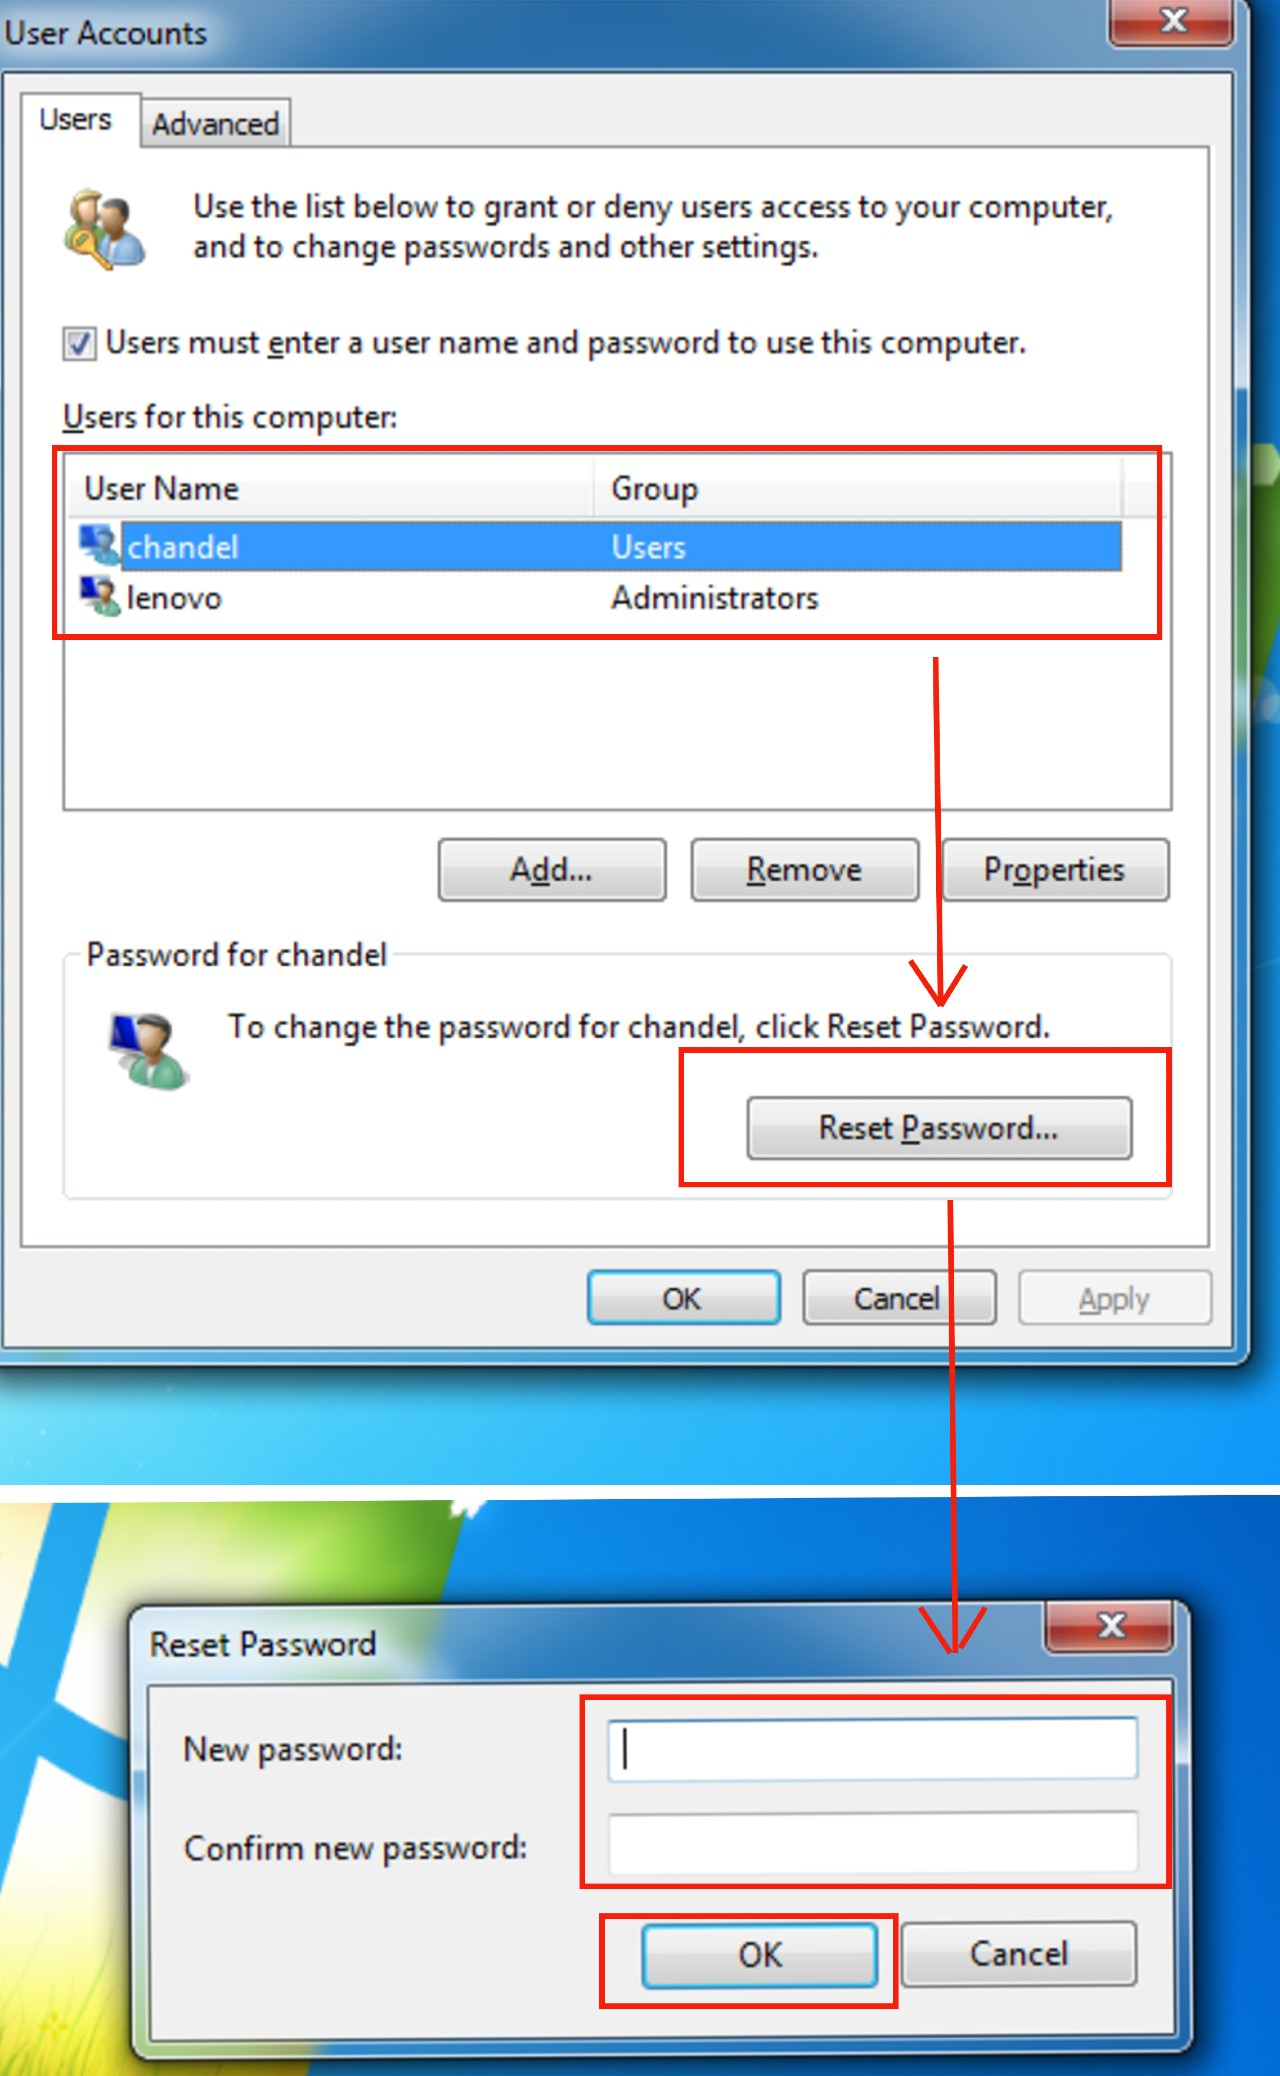 How to change and remove the password in Windows 7?